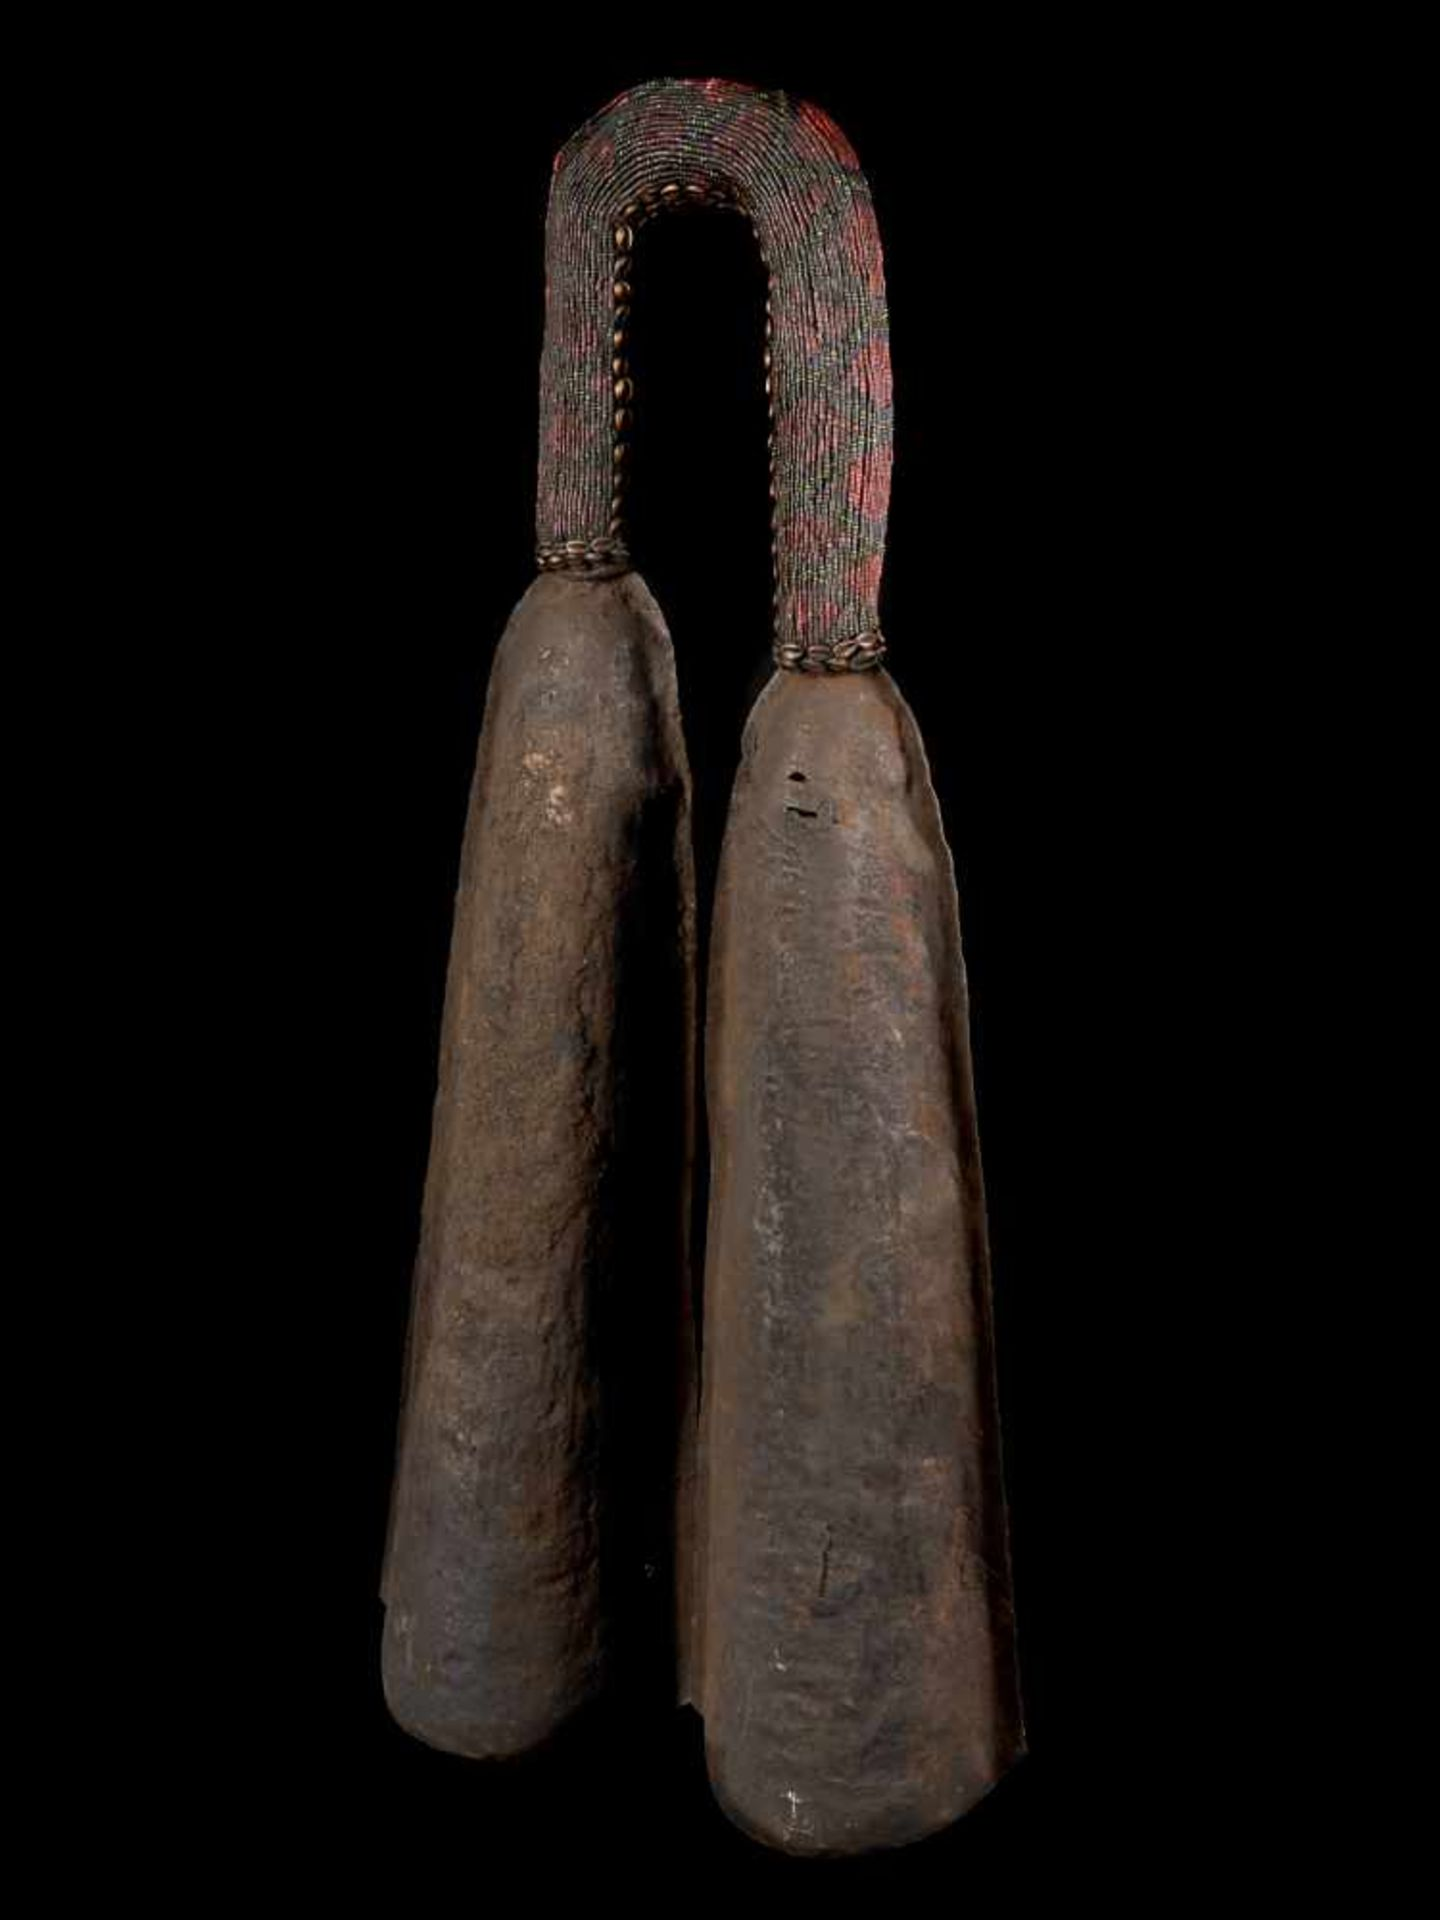 Ceremonial Double Gong With Beaded Handle - Tribal ArtThis ceremonial double gong consists of two - Bild 2 aus 6